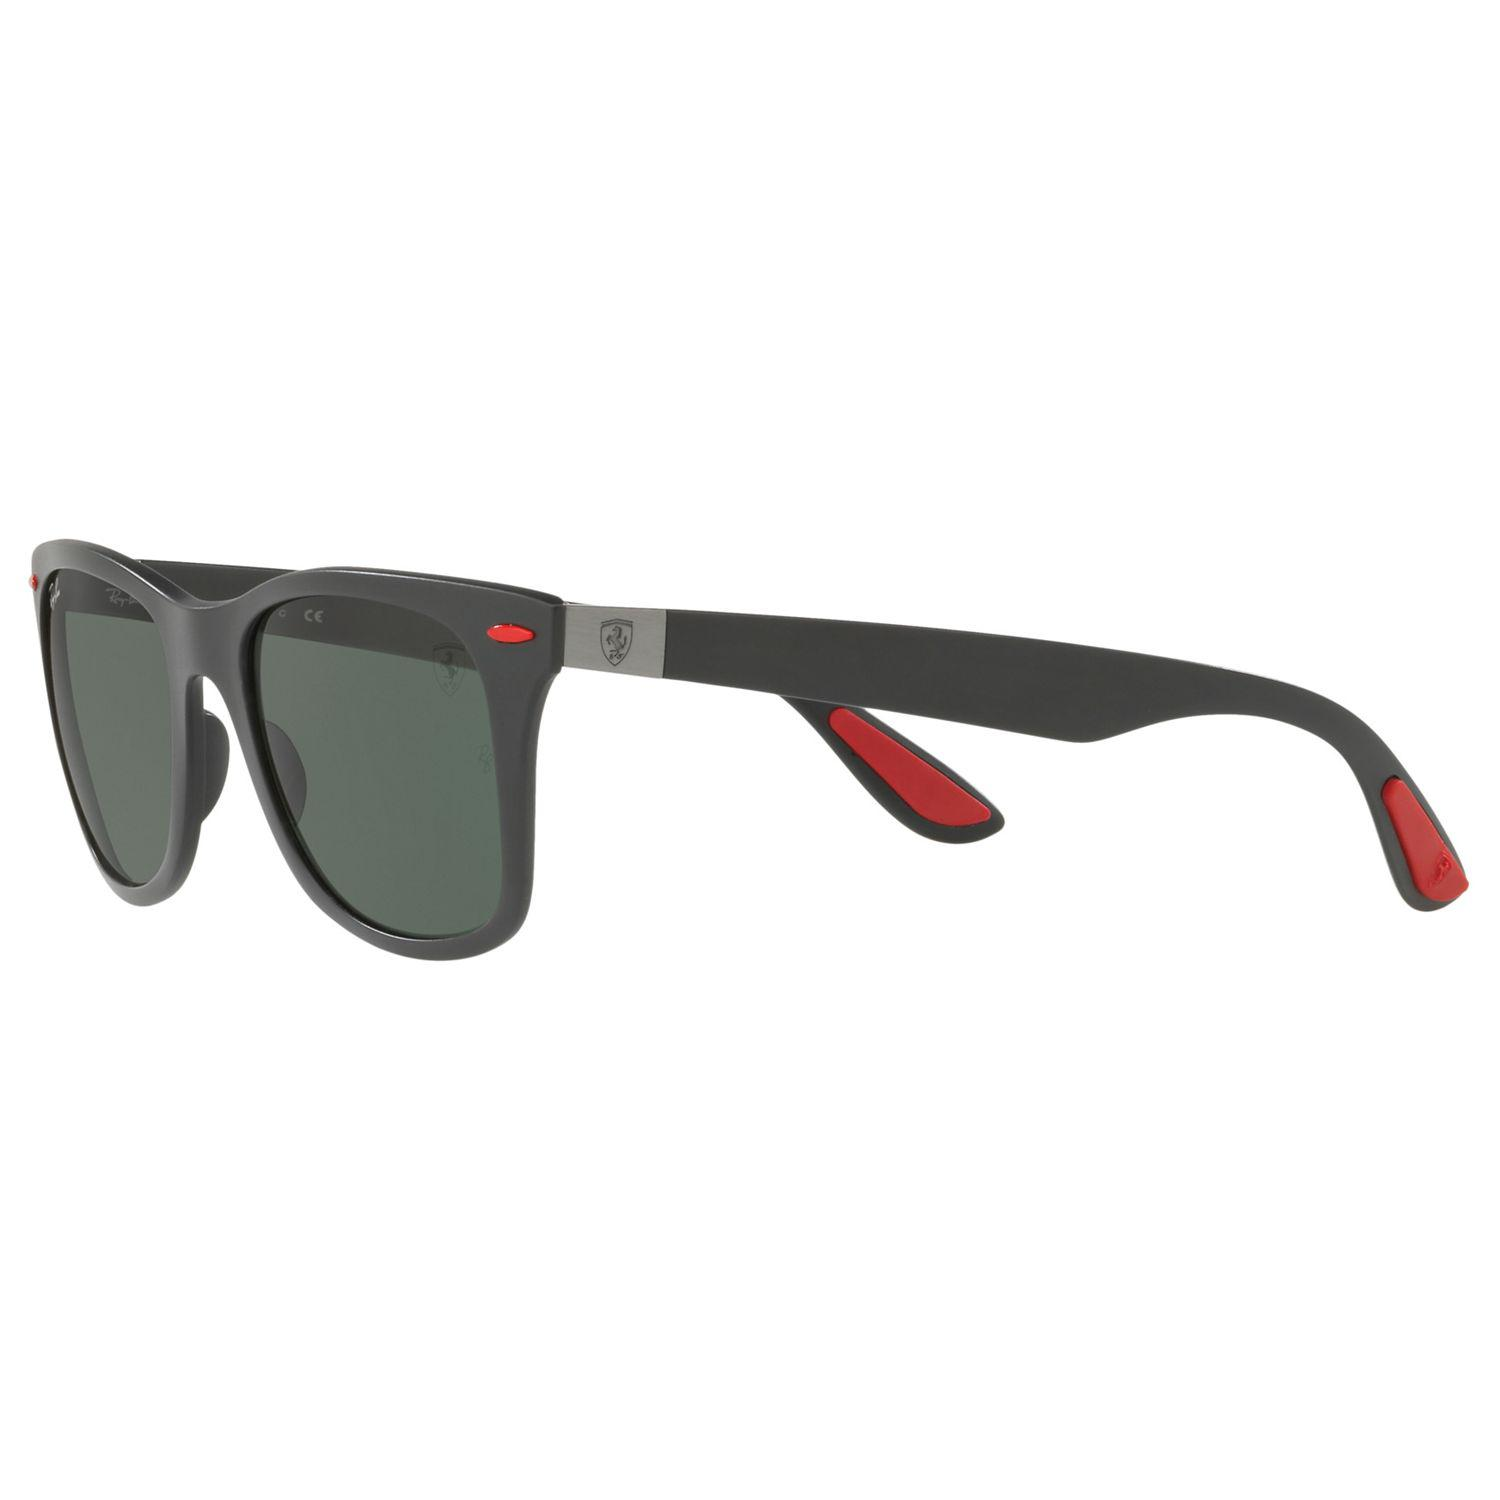 8ec0fff6303 ... get ray ban rb4195m scuderia ferrari wayfarer sunglasses in green for  2664a 4b2bf